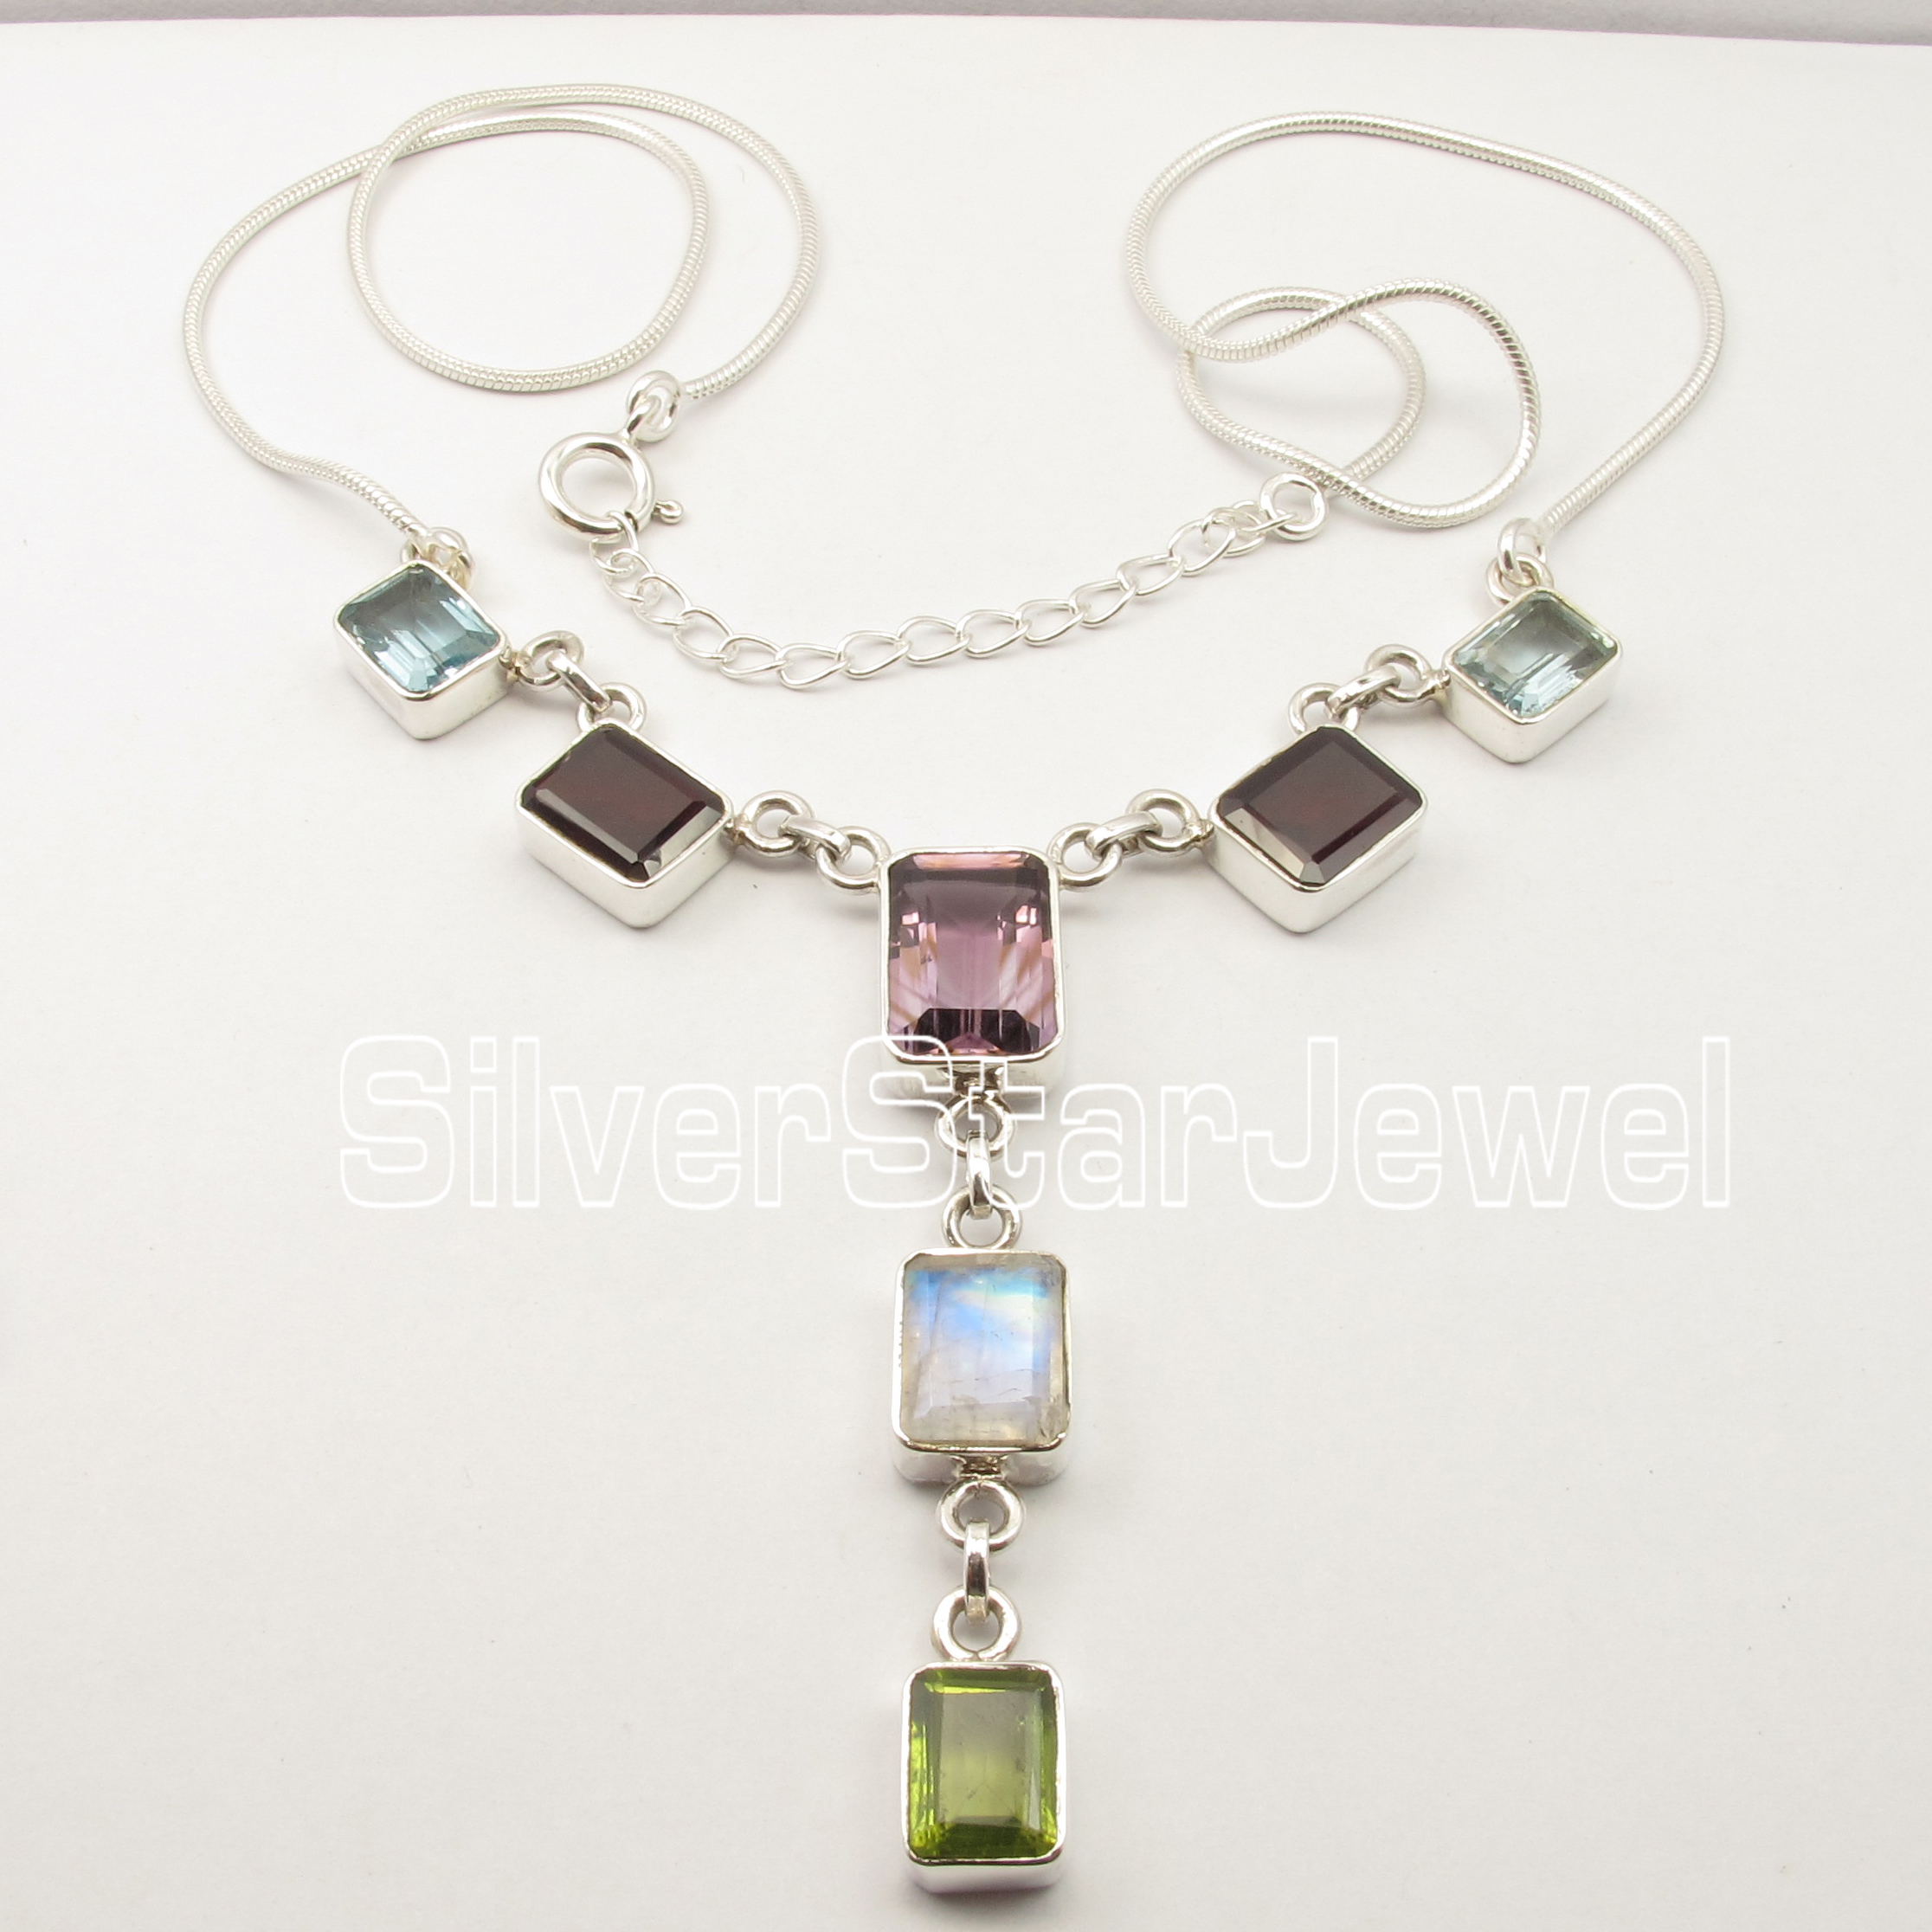 Cari International Pur Argent Rectangle Facettes MULTI GemS URBAIN STYLE Collier 19